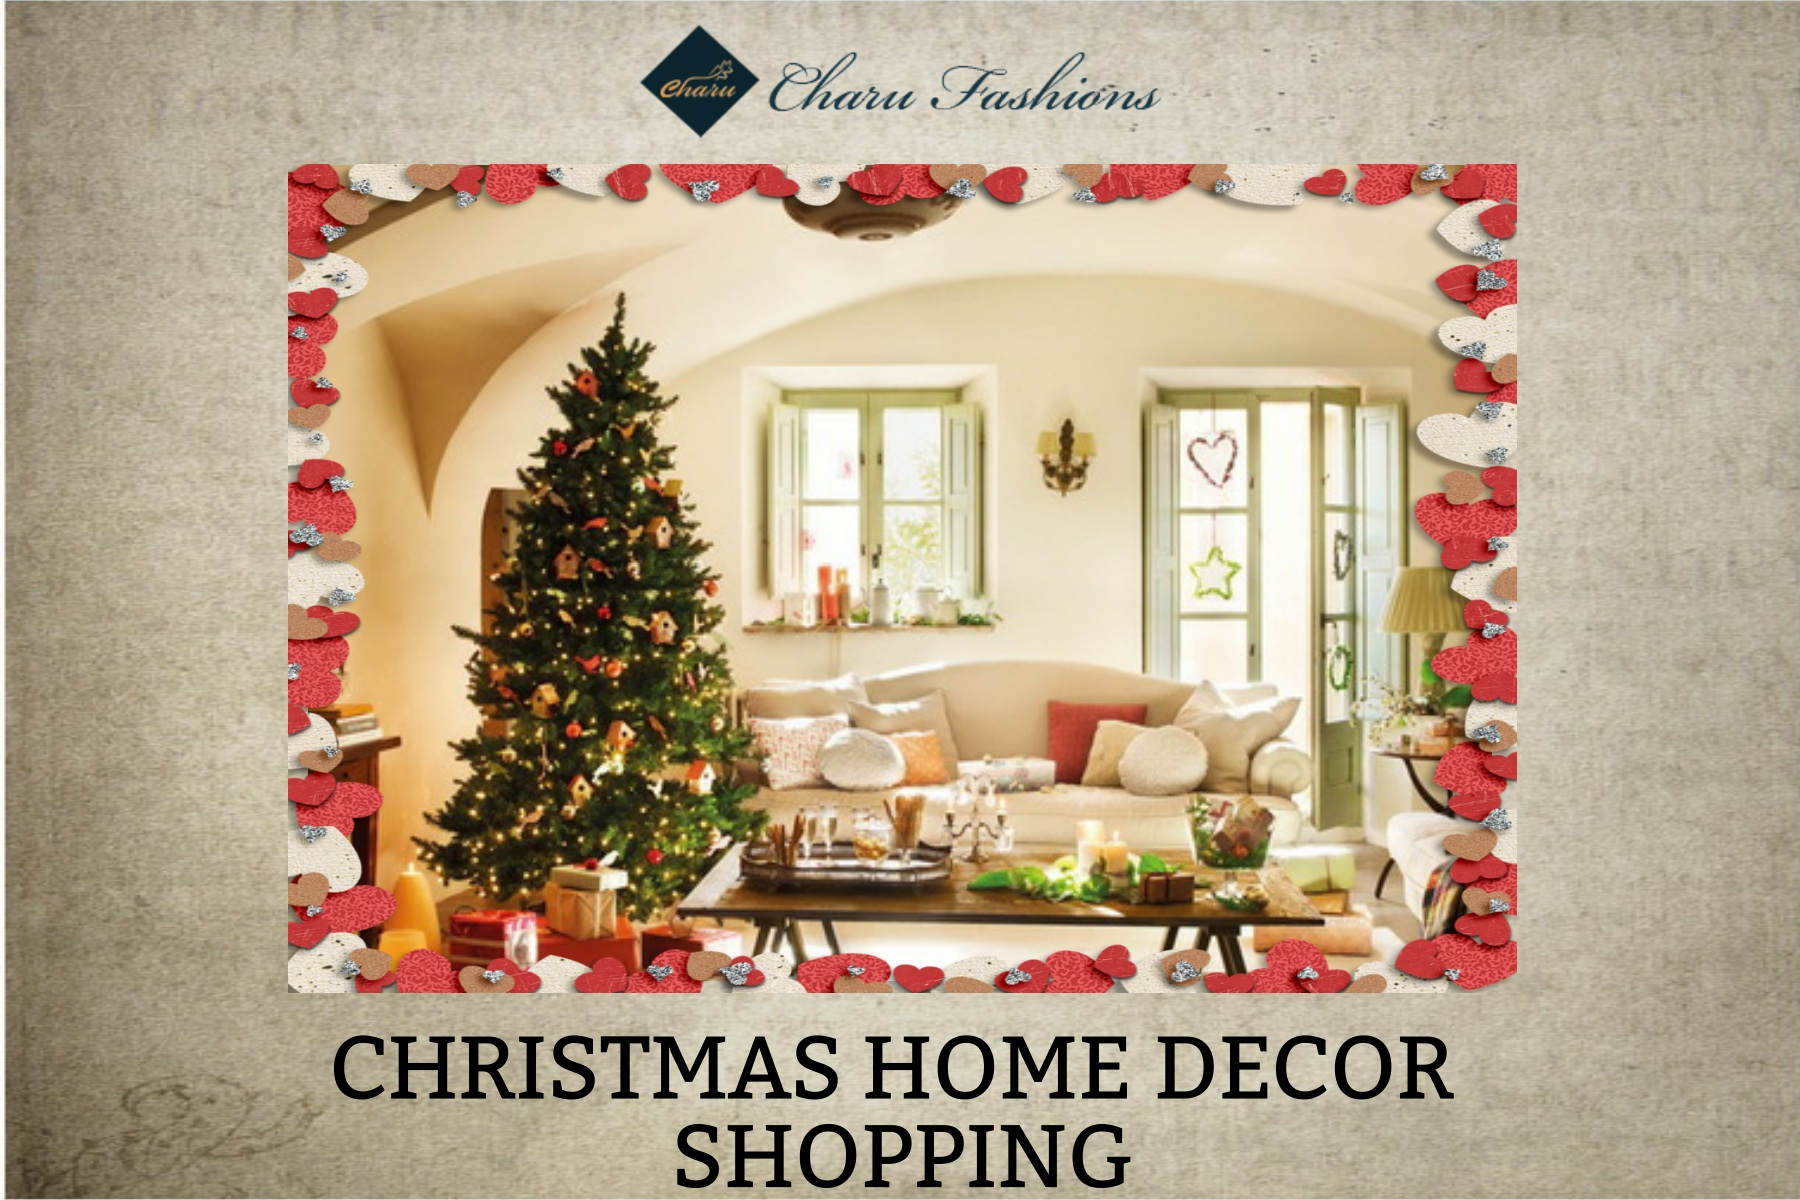 Christmas 2015 wholesale home decor items charu fashions for Wholesale home decor